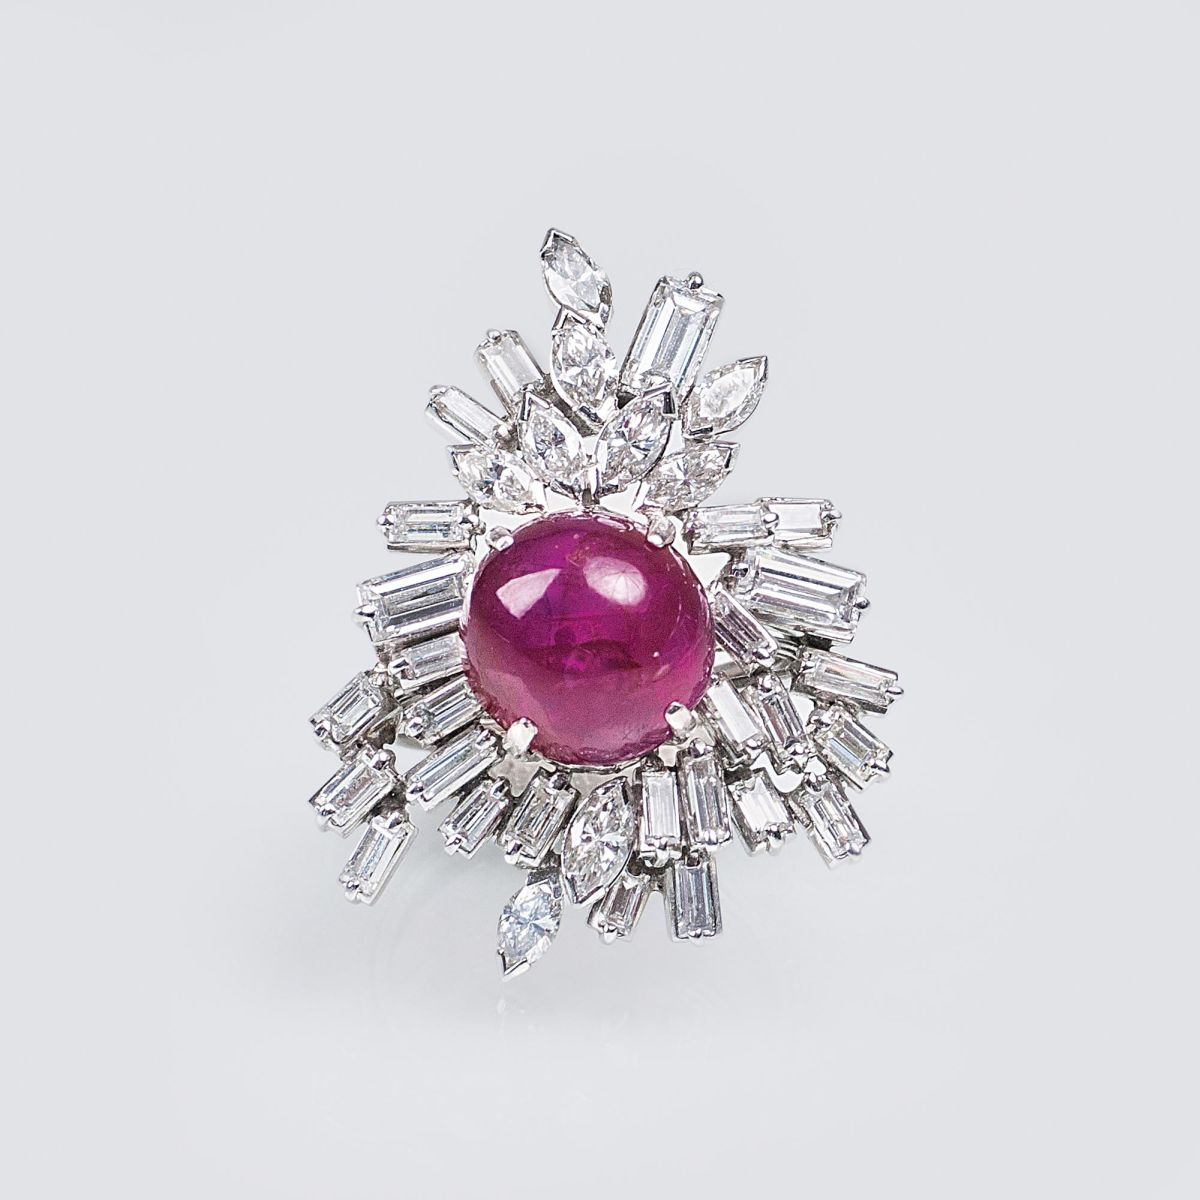 A Vintage Ruby Diamond Ring